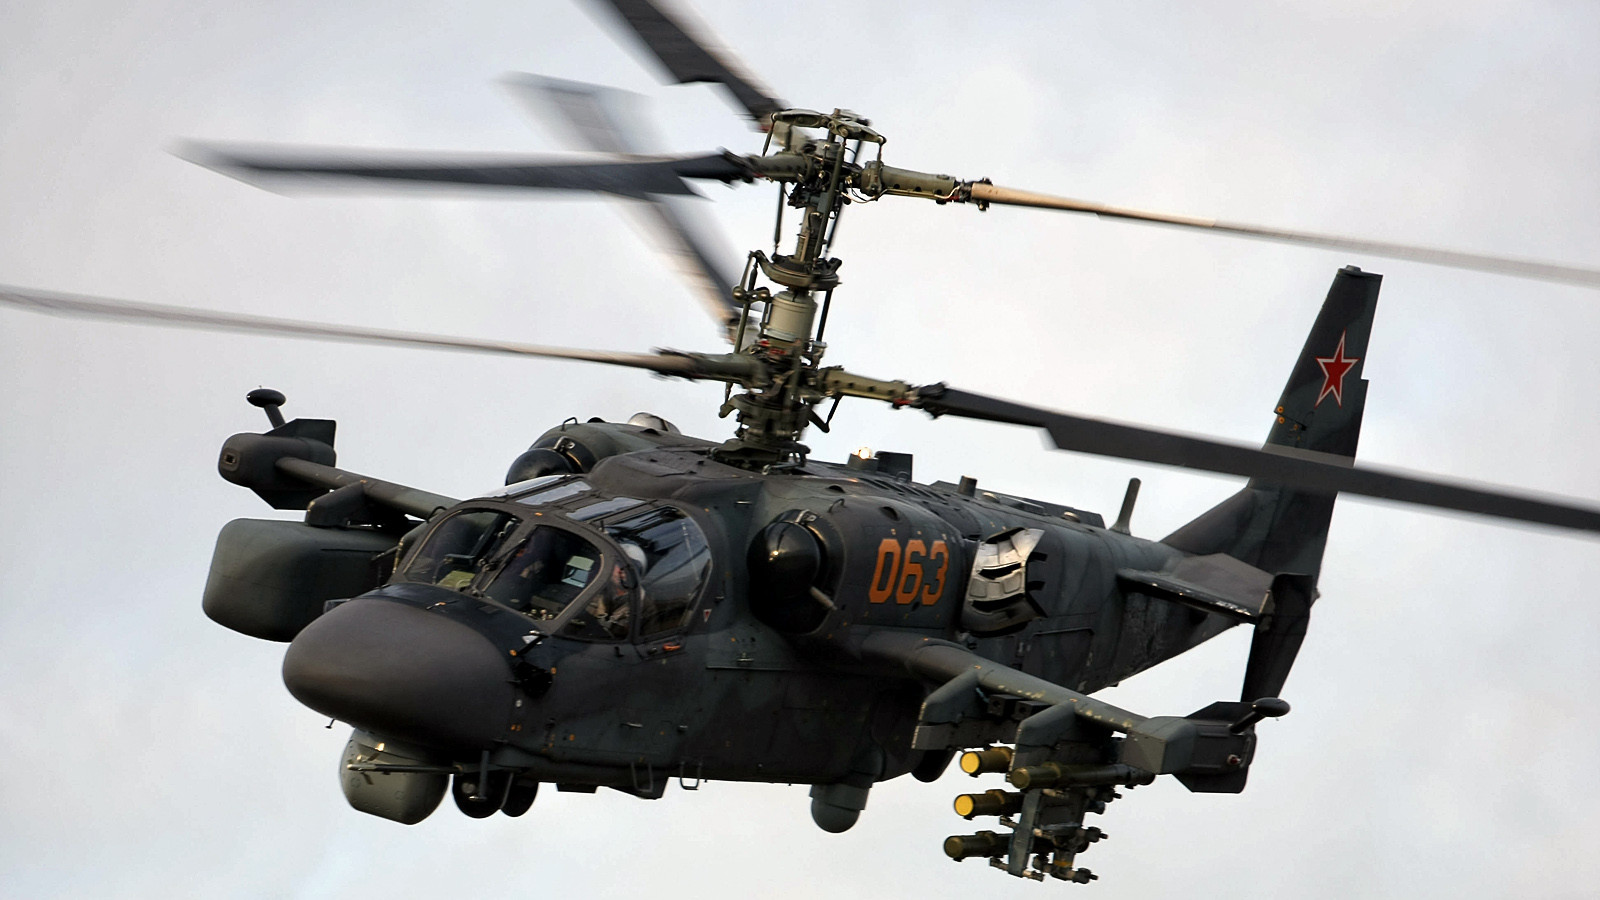 us military drone types with Exercito Brasileiro Avalia Quatro Helicopteros De Ataque Dois Deles Russos on Exercito Brasileiro Avalia Quatro Helicopteros De Ataque Dois Deles Russos moreover 1169341 in addition Russia Looks Modernize Its Airpower Huge Drone Project 1557496 further 81474702 in addition 558 Aircraft Review Aerog Uv 4 Uav By Thranda.